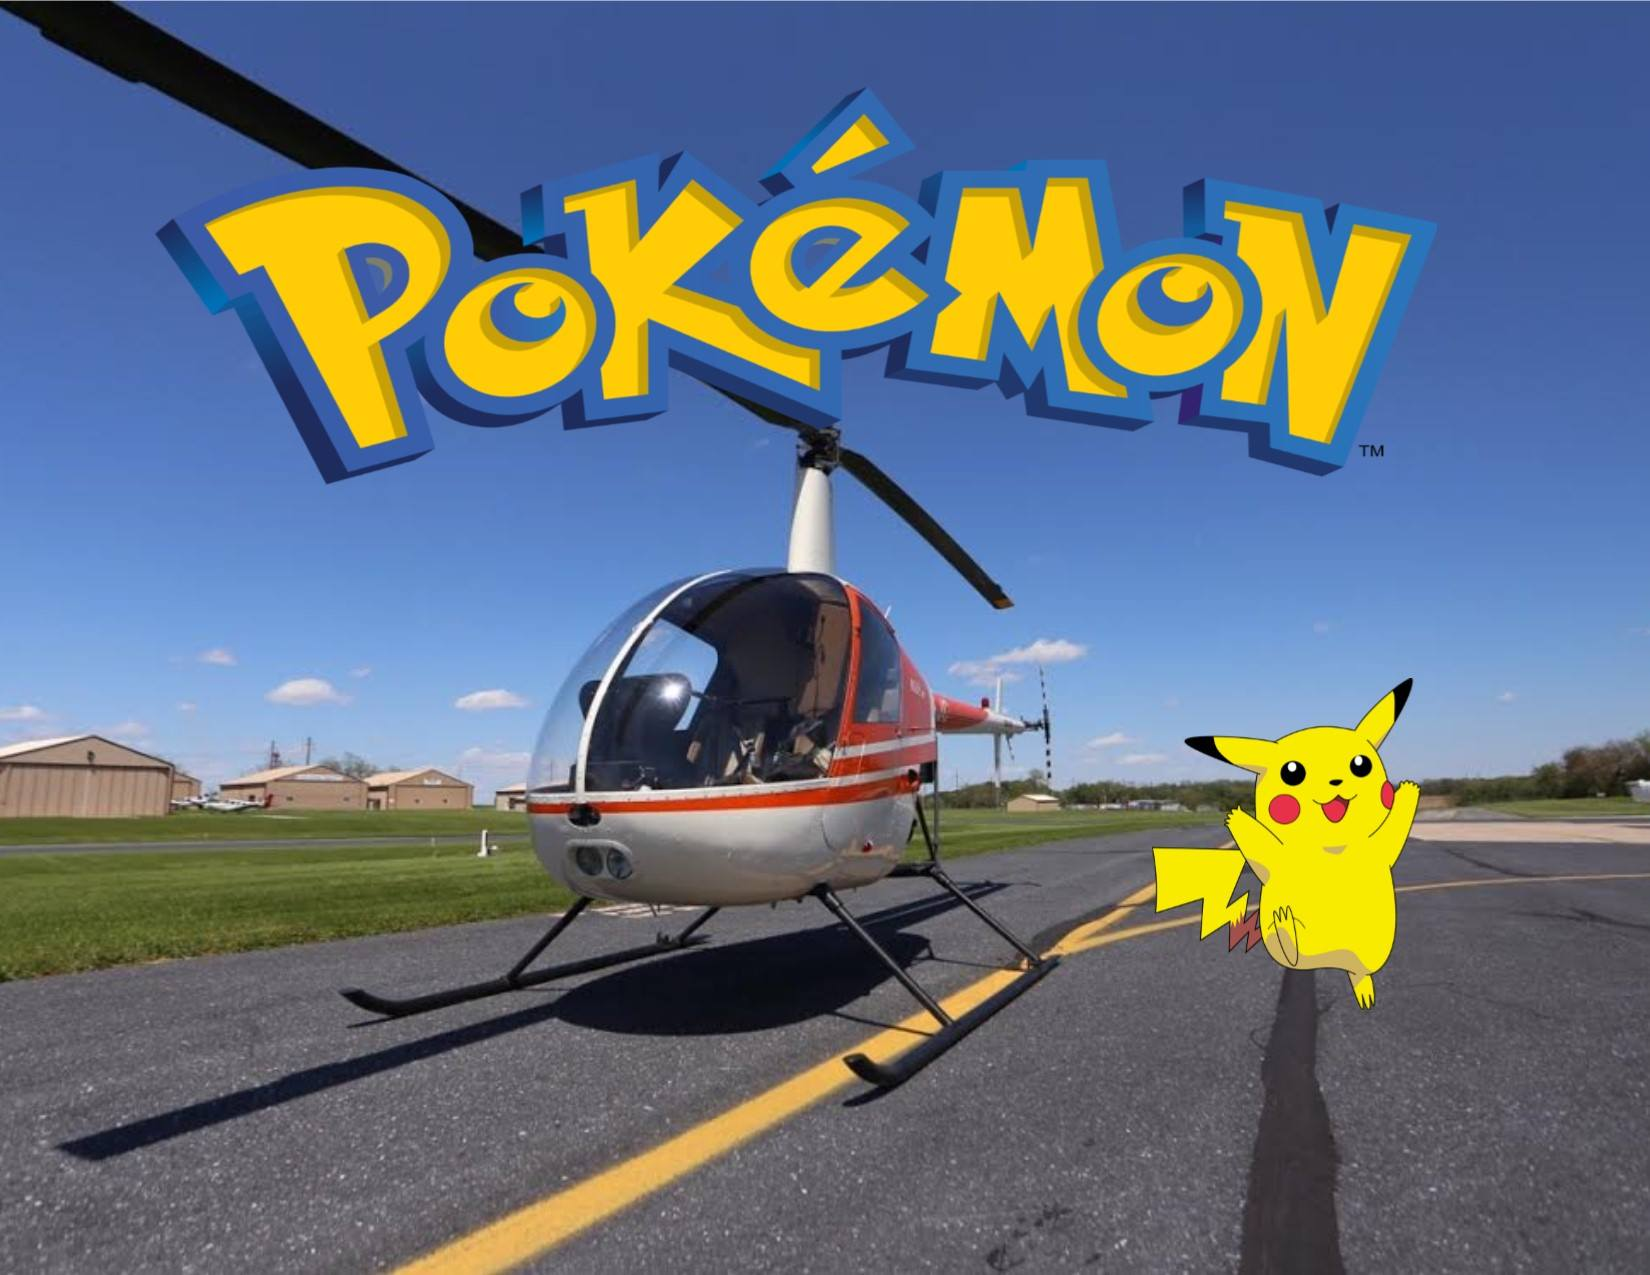 Pokémon Go helicopter tour